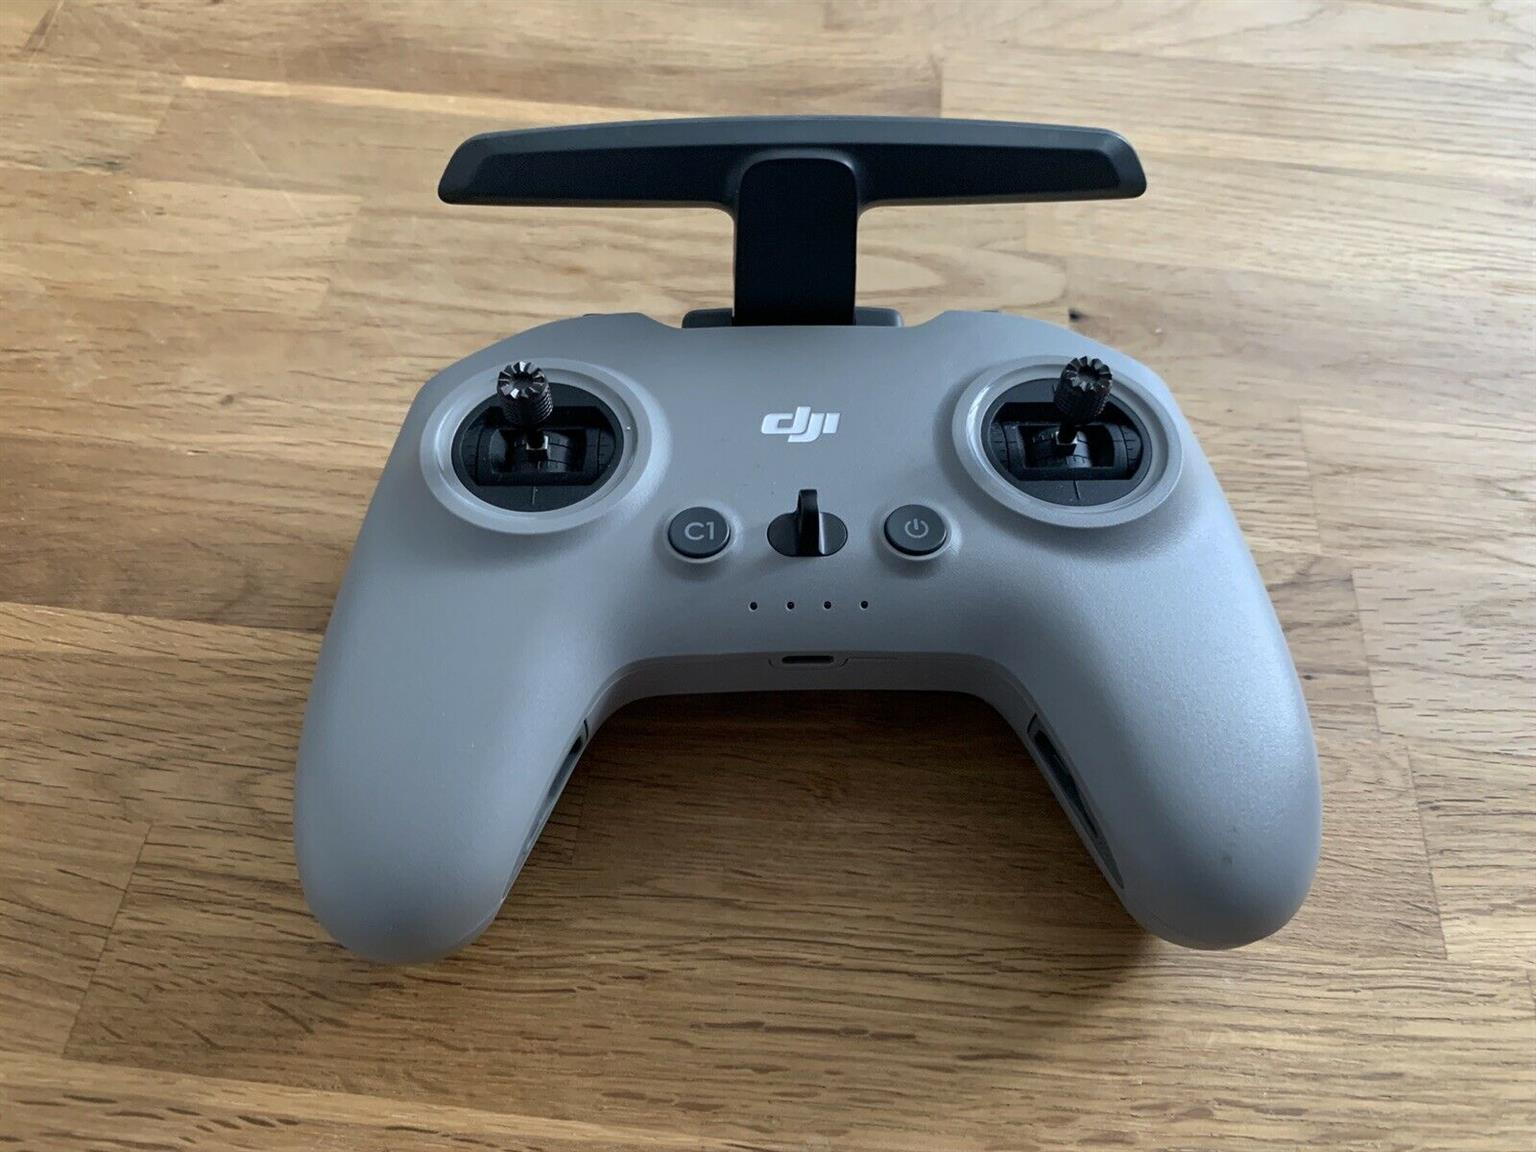 used dji fpv racing drone with 127 minutes